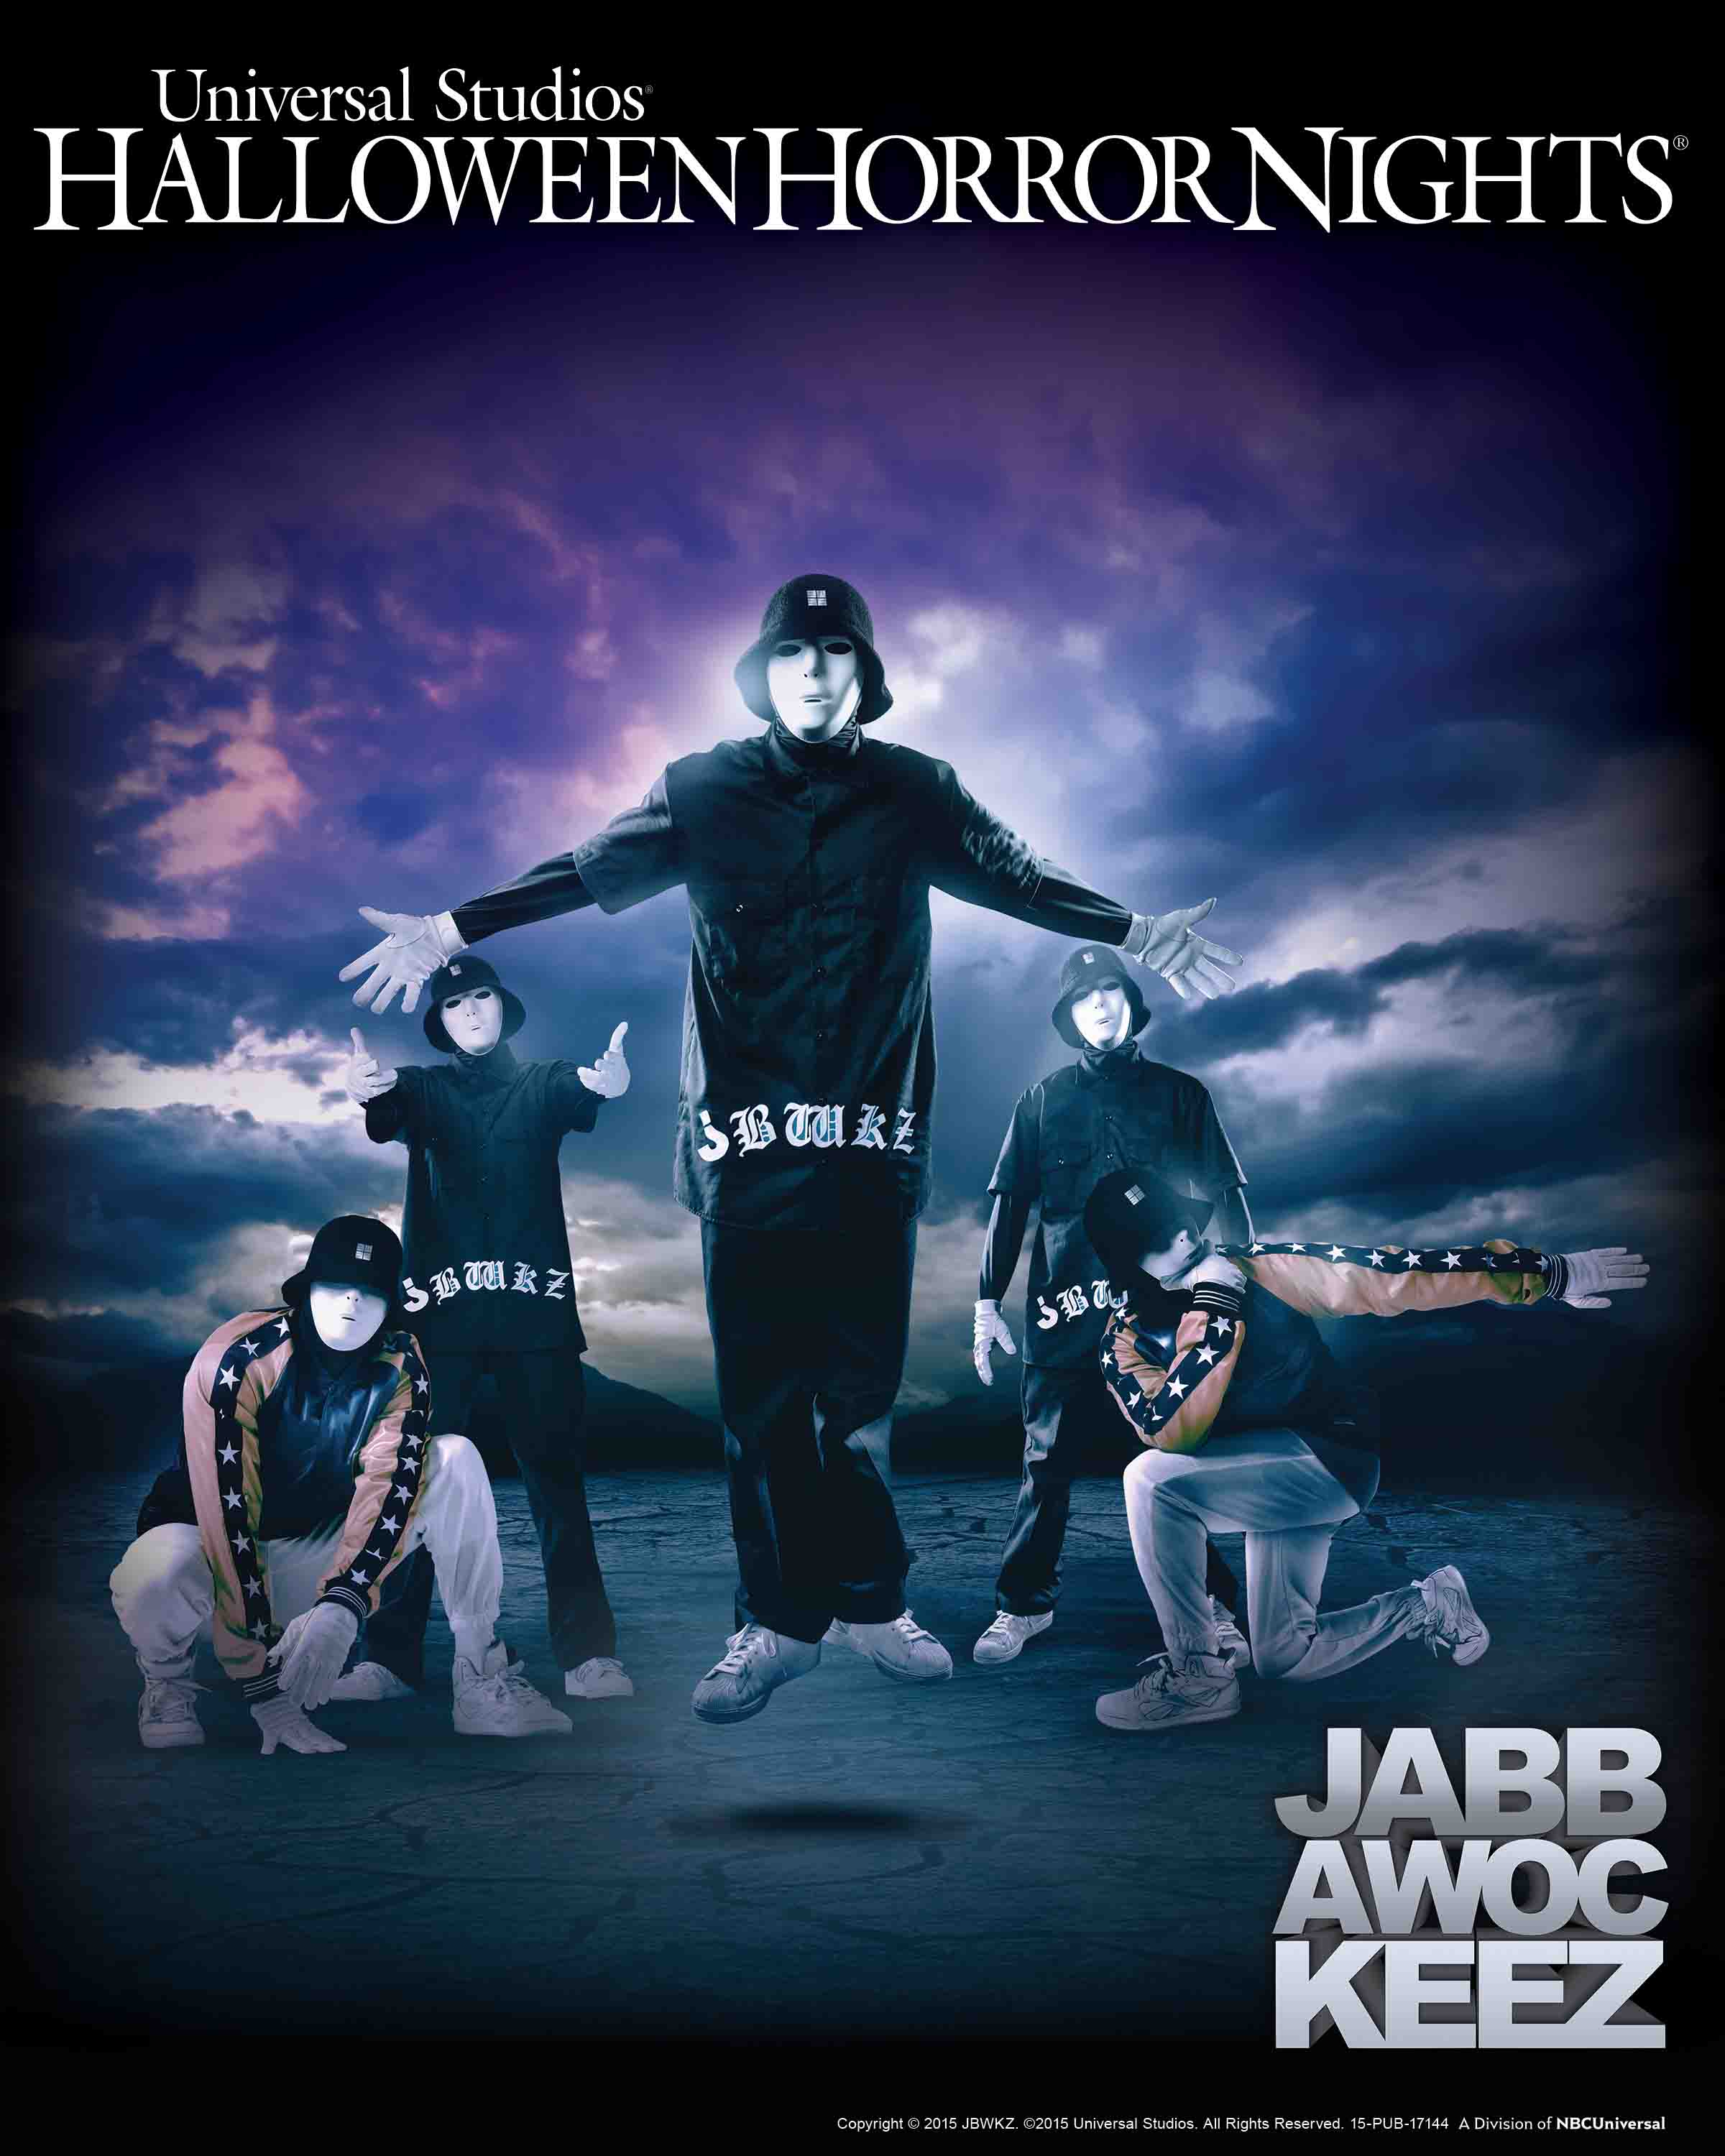 jabbawockeez at hhn 2015 - Universal Halloween Night